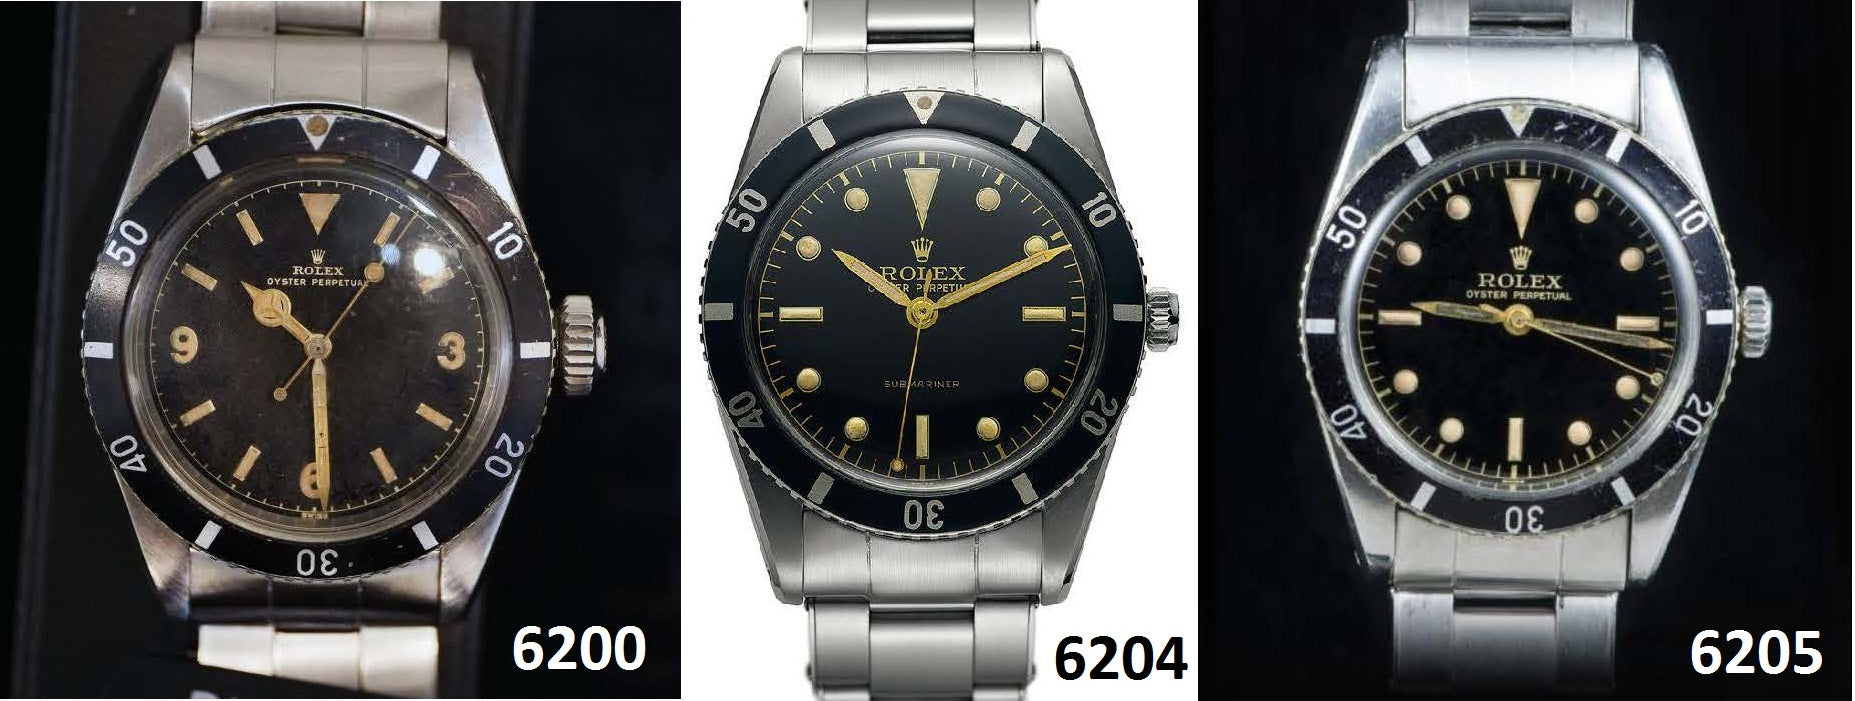 3 vintage rolex submariners side by side